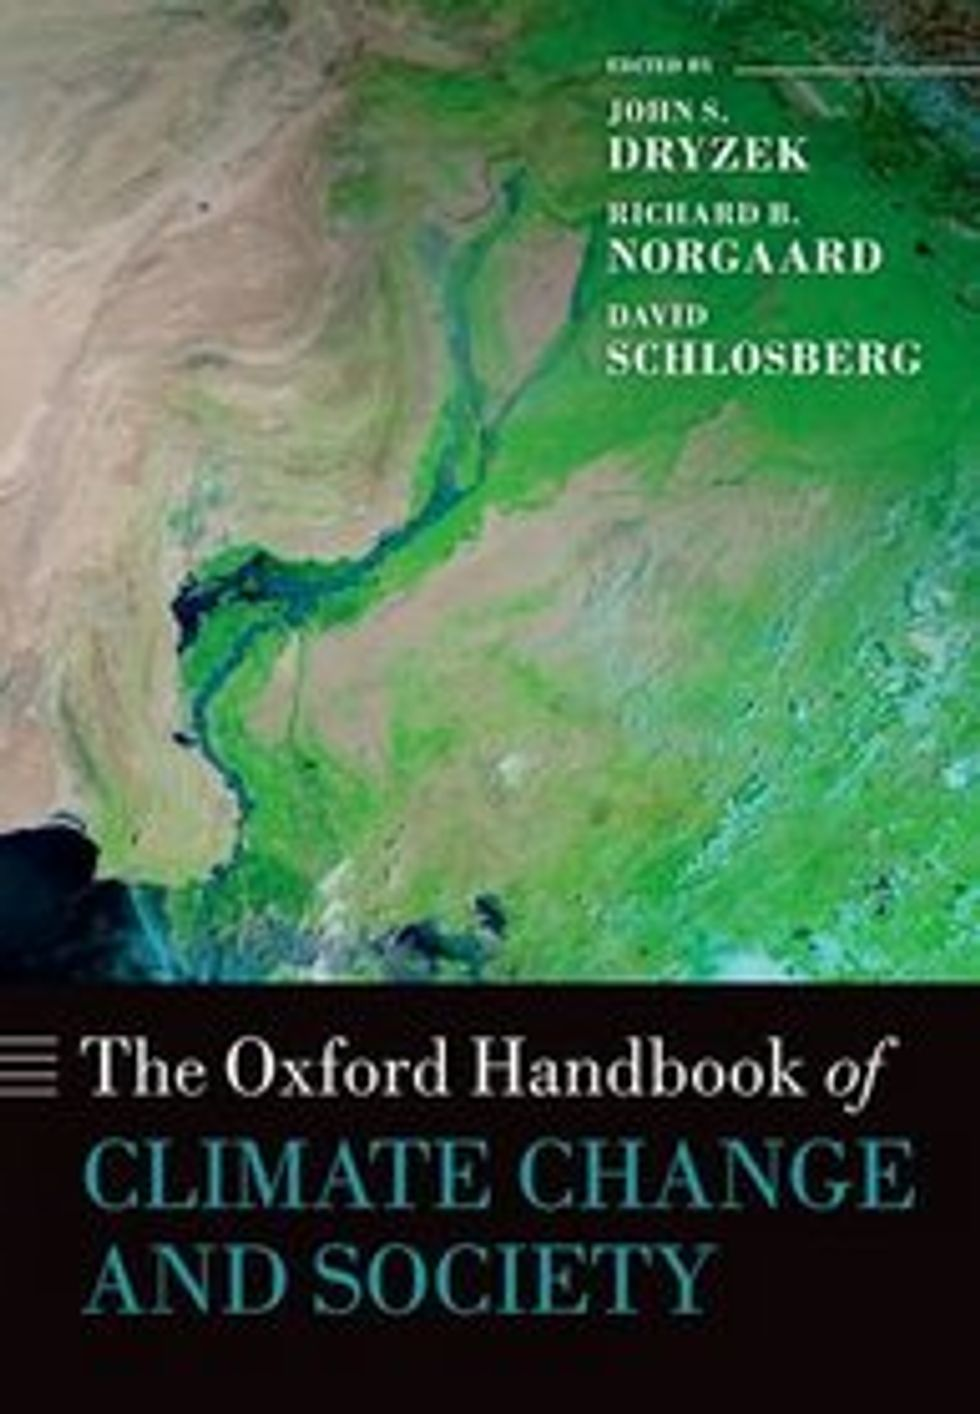 Public Opinion and Political Participation in the Climate Change Debate